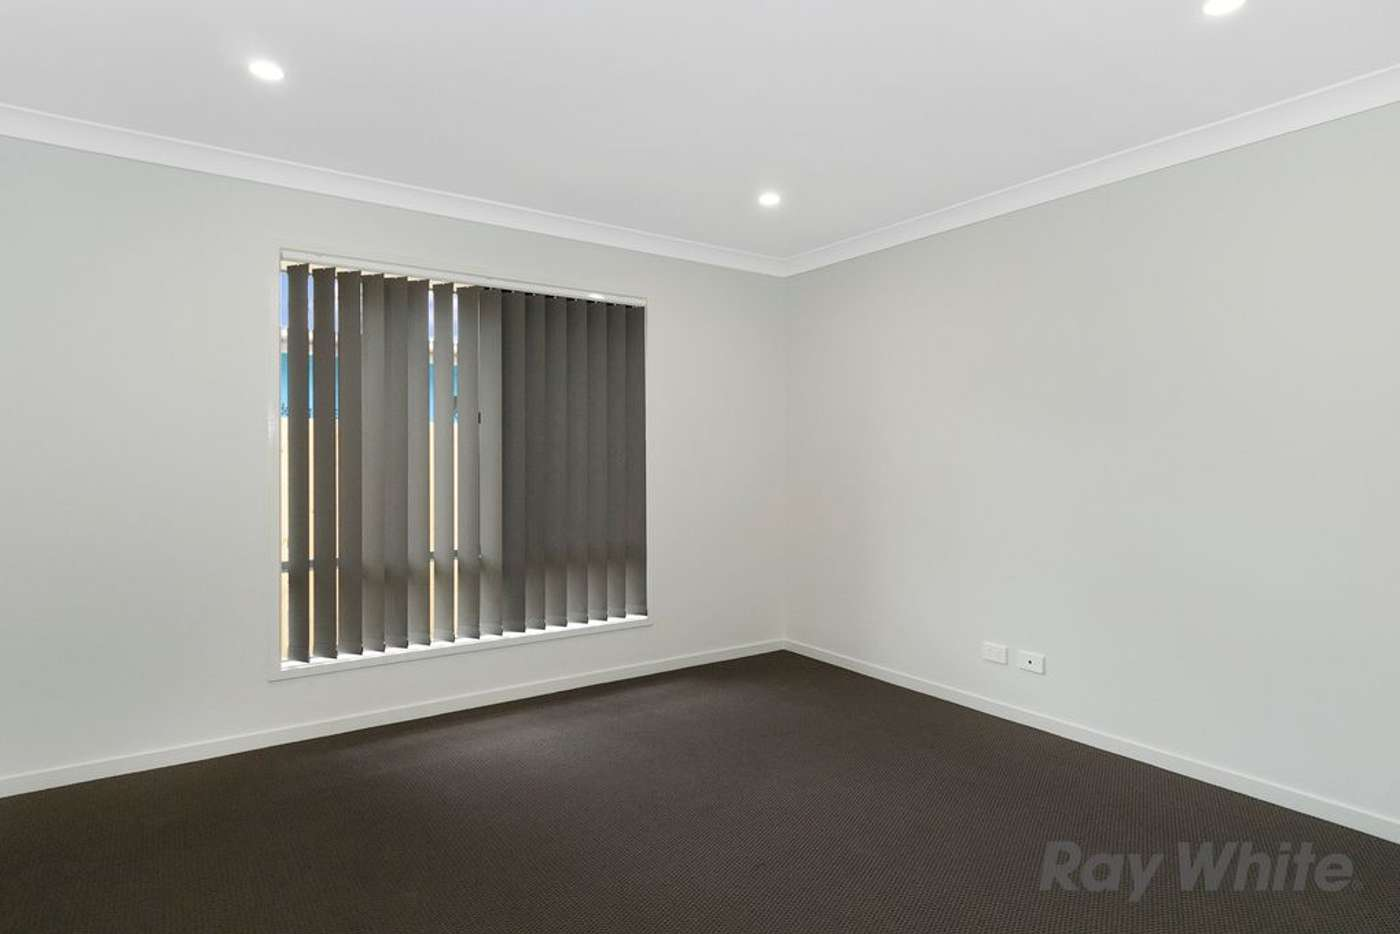 Sixth view of Homely house listing, 59 Emerson Road, Bannockburn QLD 4207